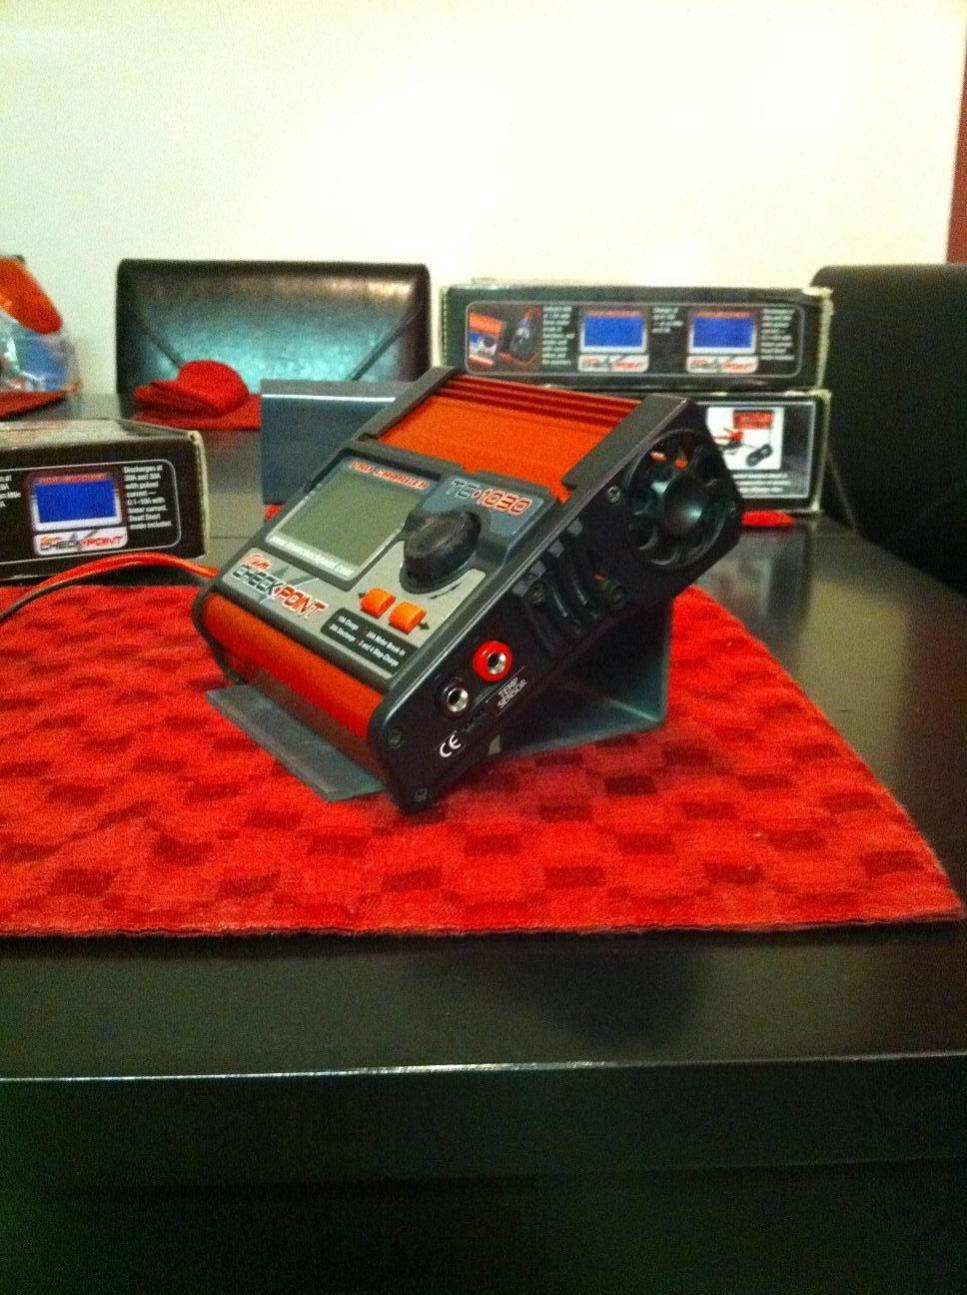 bestrc with 434749 Team Checkpoint Chargers Balancer Power Supply on Best Rc Boat Rough Water likewise Best Rc Cars Under 200 besides Best Rc Semi Trucks moreover Official New Traxxas E Revo 2 0 With Video in addition Xtreme Racing Losi Rock Rey Carbon Fiber Body Kit.